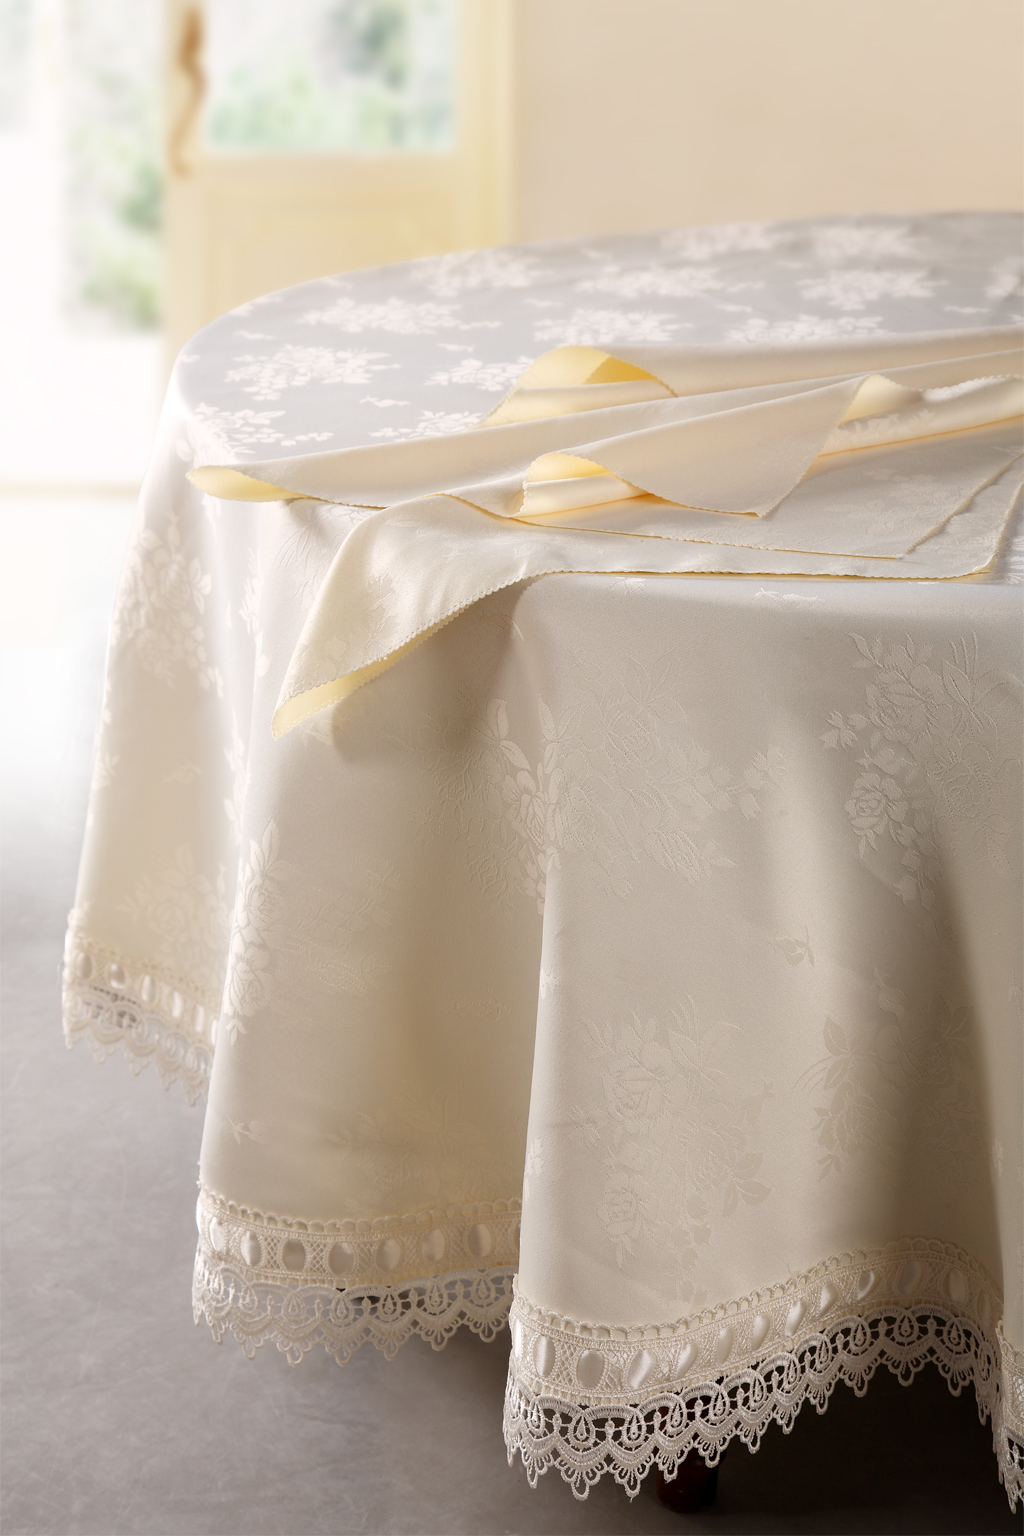 wholesale tablecloths, wholesale table linen, tablecloths wholesale, discount table linens